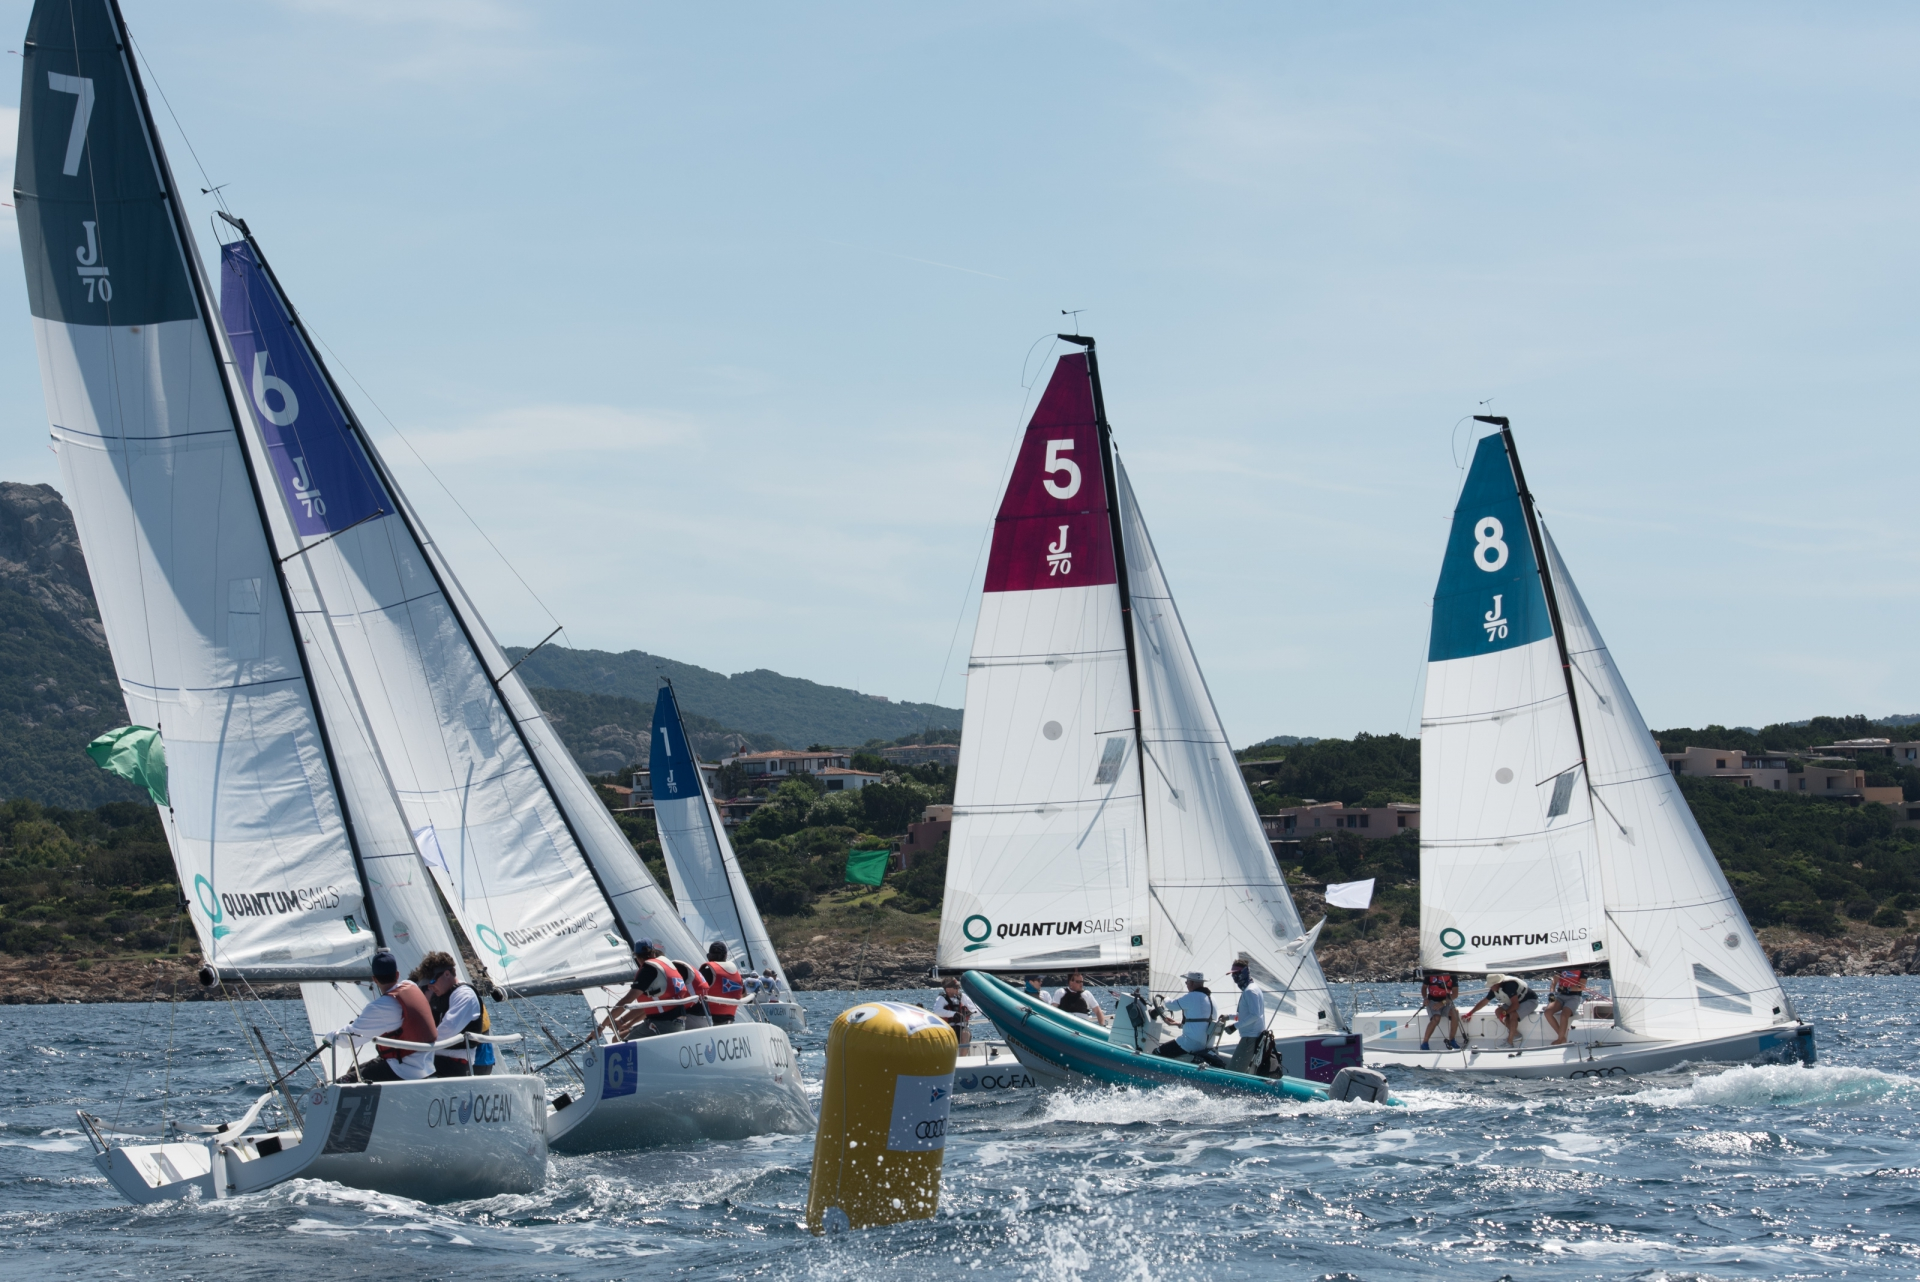 Italy's Yacht Club Costa Smeralda to host 2020 YCCS Global Team Racing Regatta - NEWS - Yacht Club Costa Smeralda